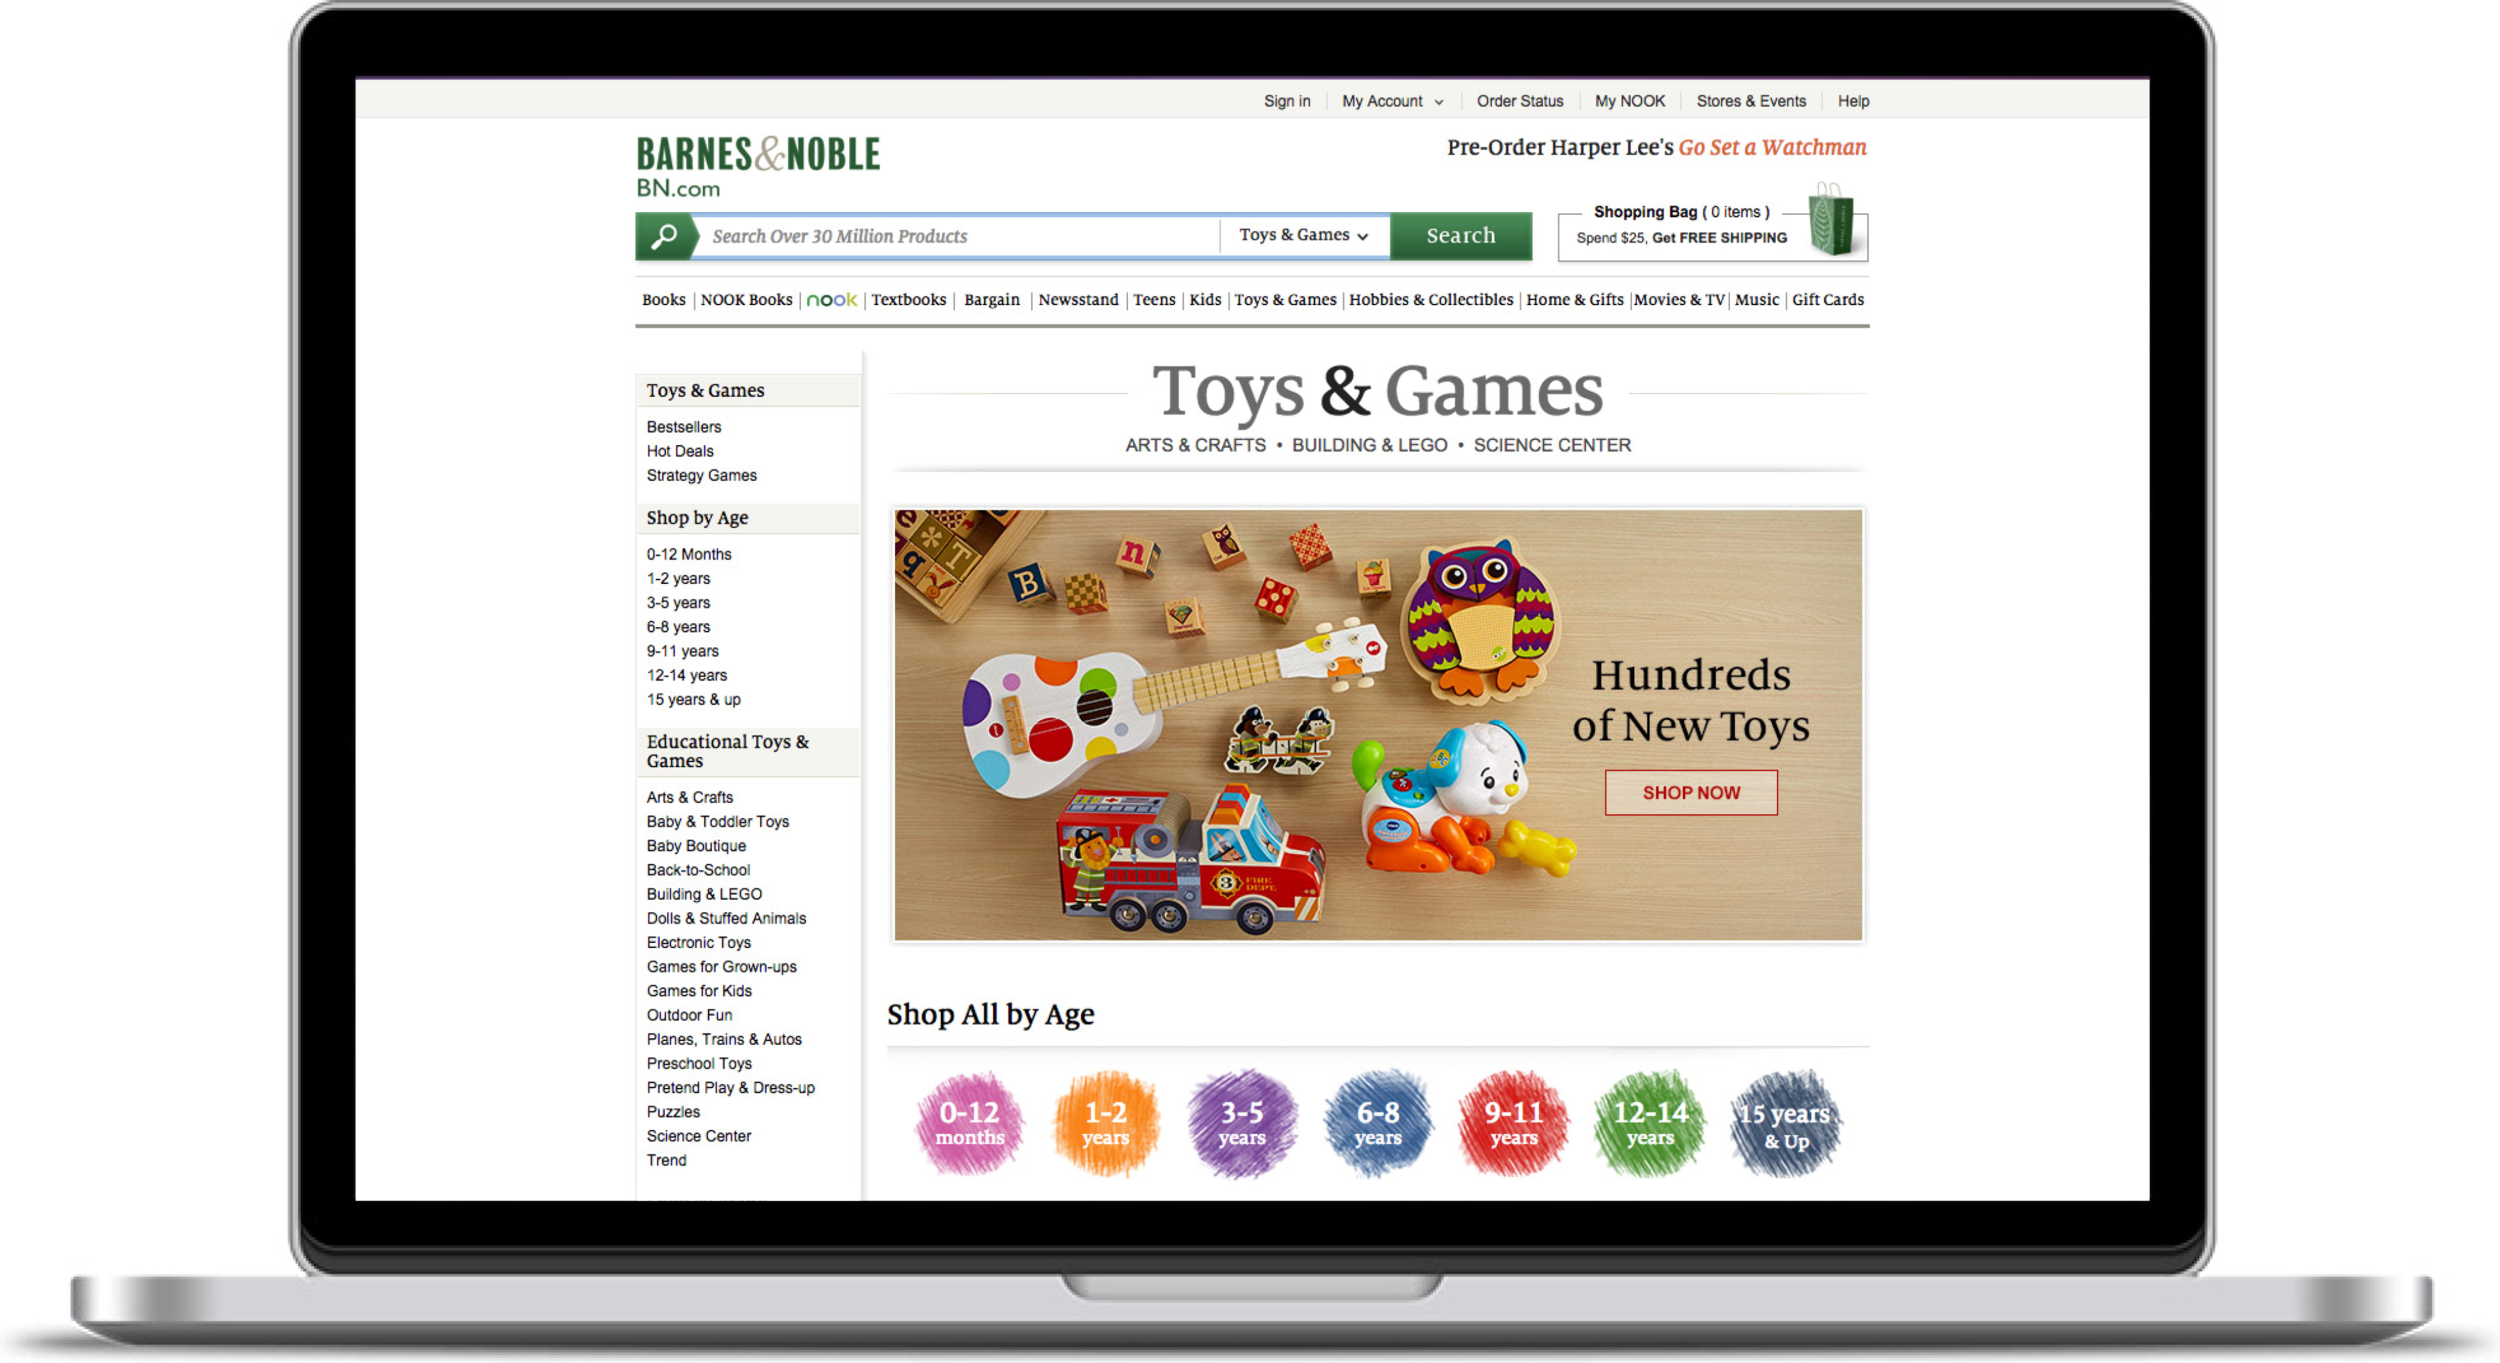 BN_Toys_Games_Storefront_Showcase__New_Crop_Sq_Spc.png